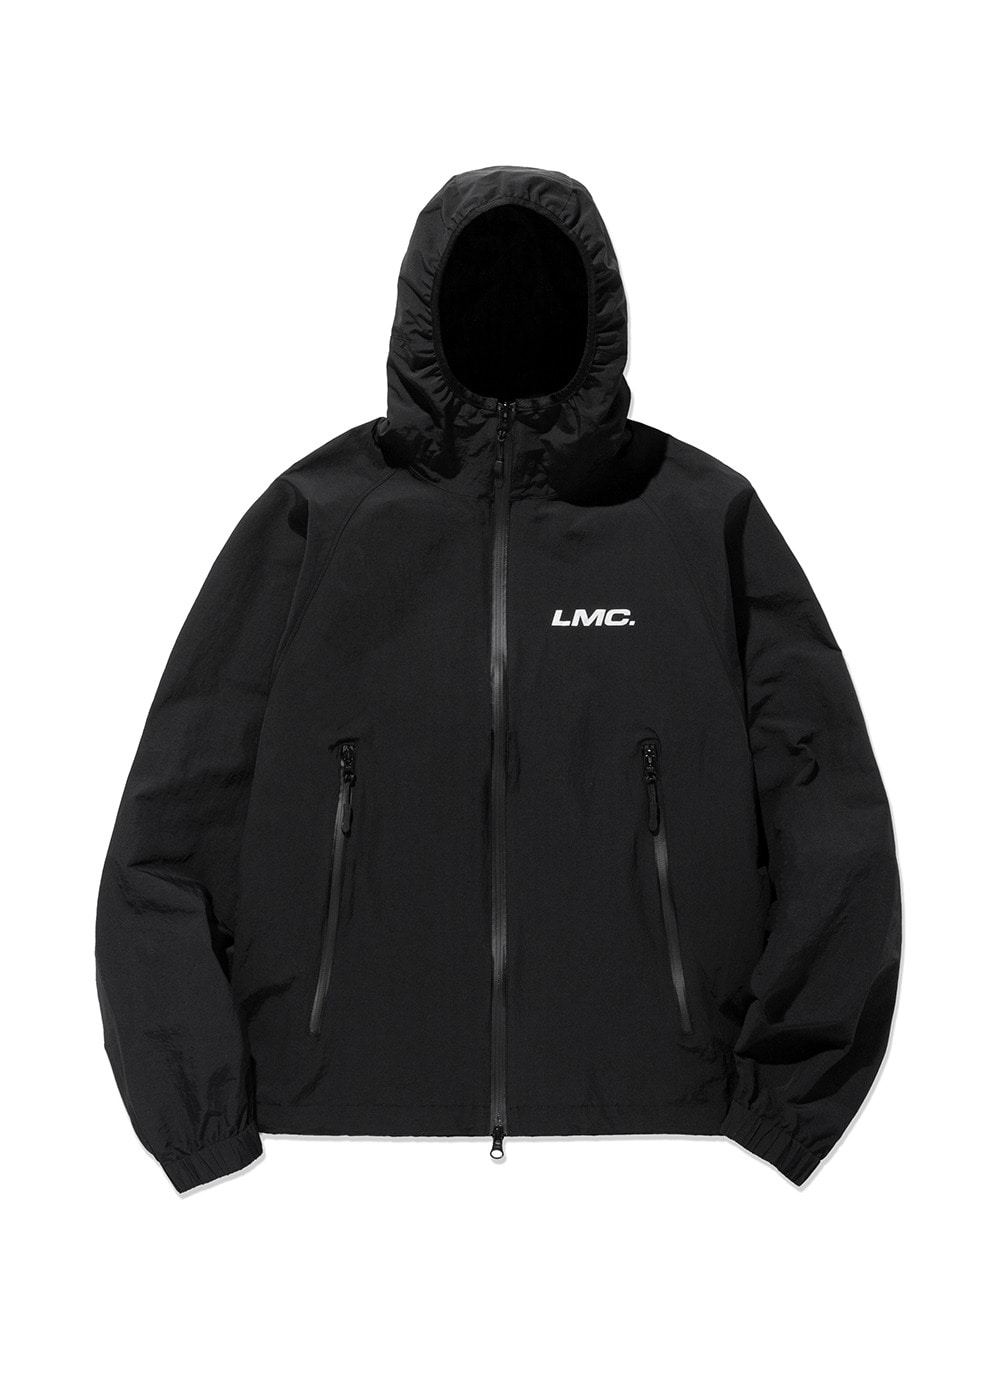 LMC LIGHT WINDBREAKER JACKET black